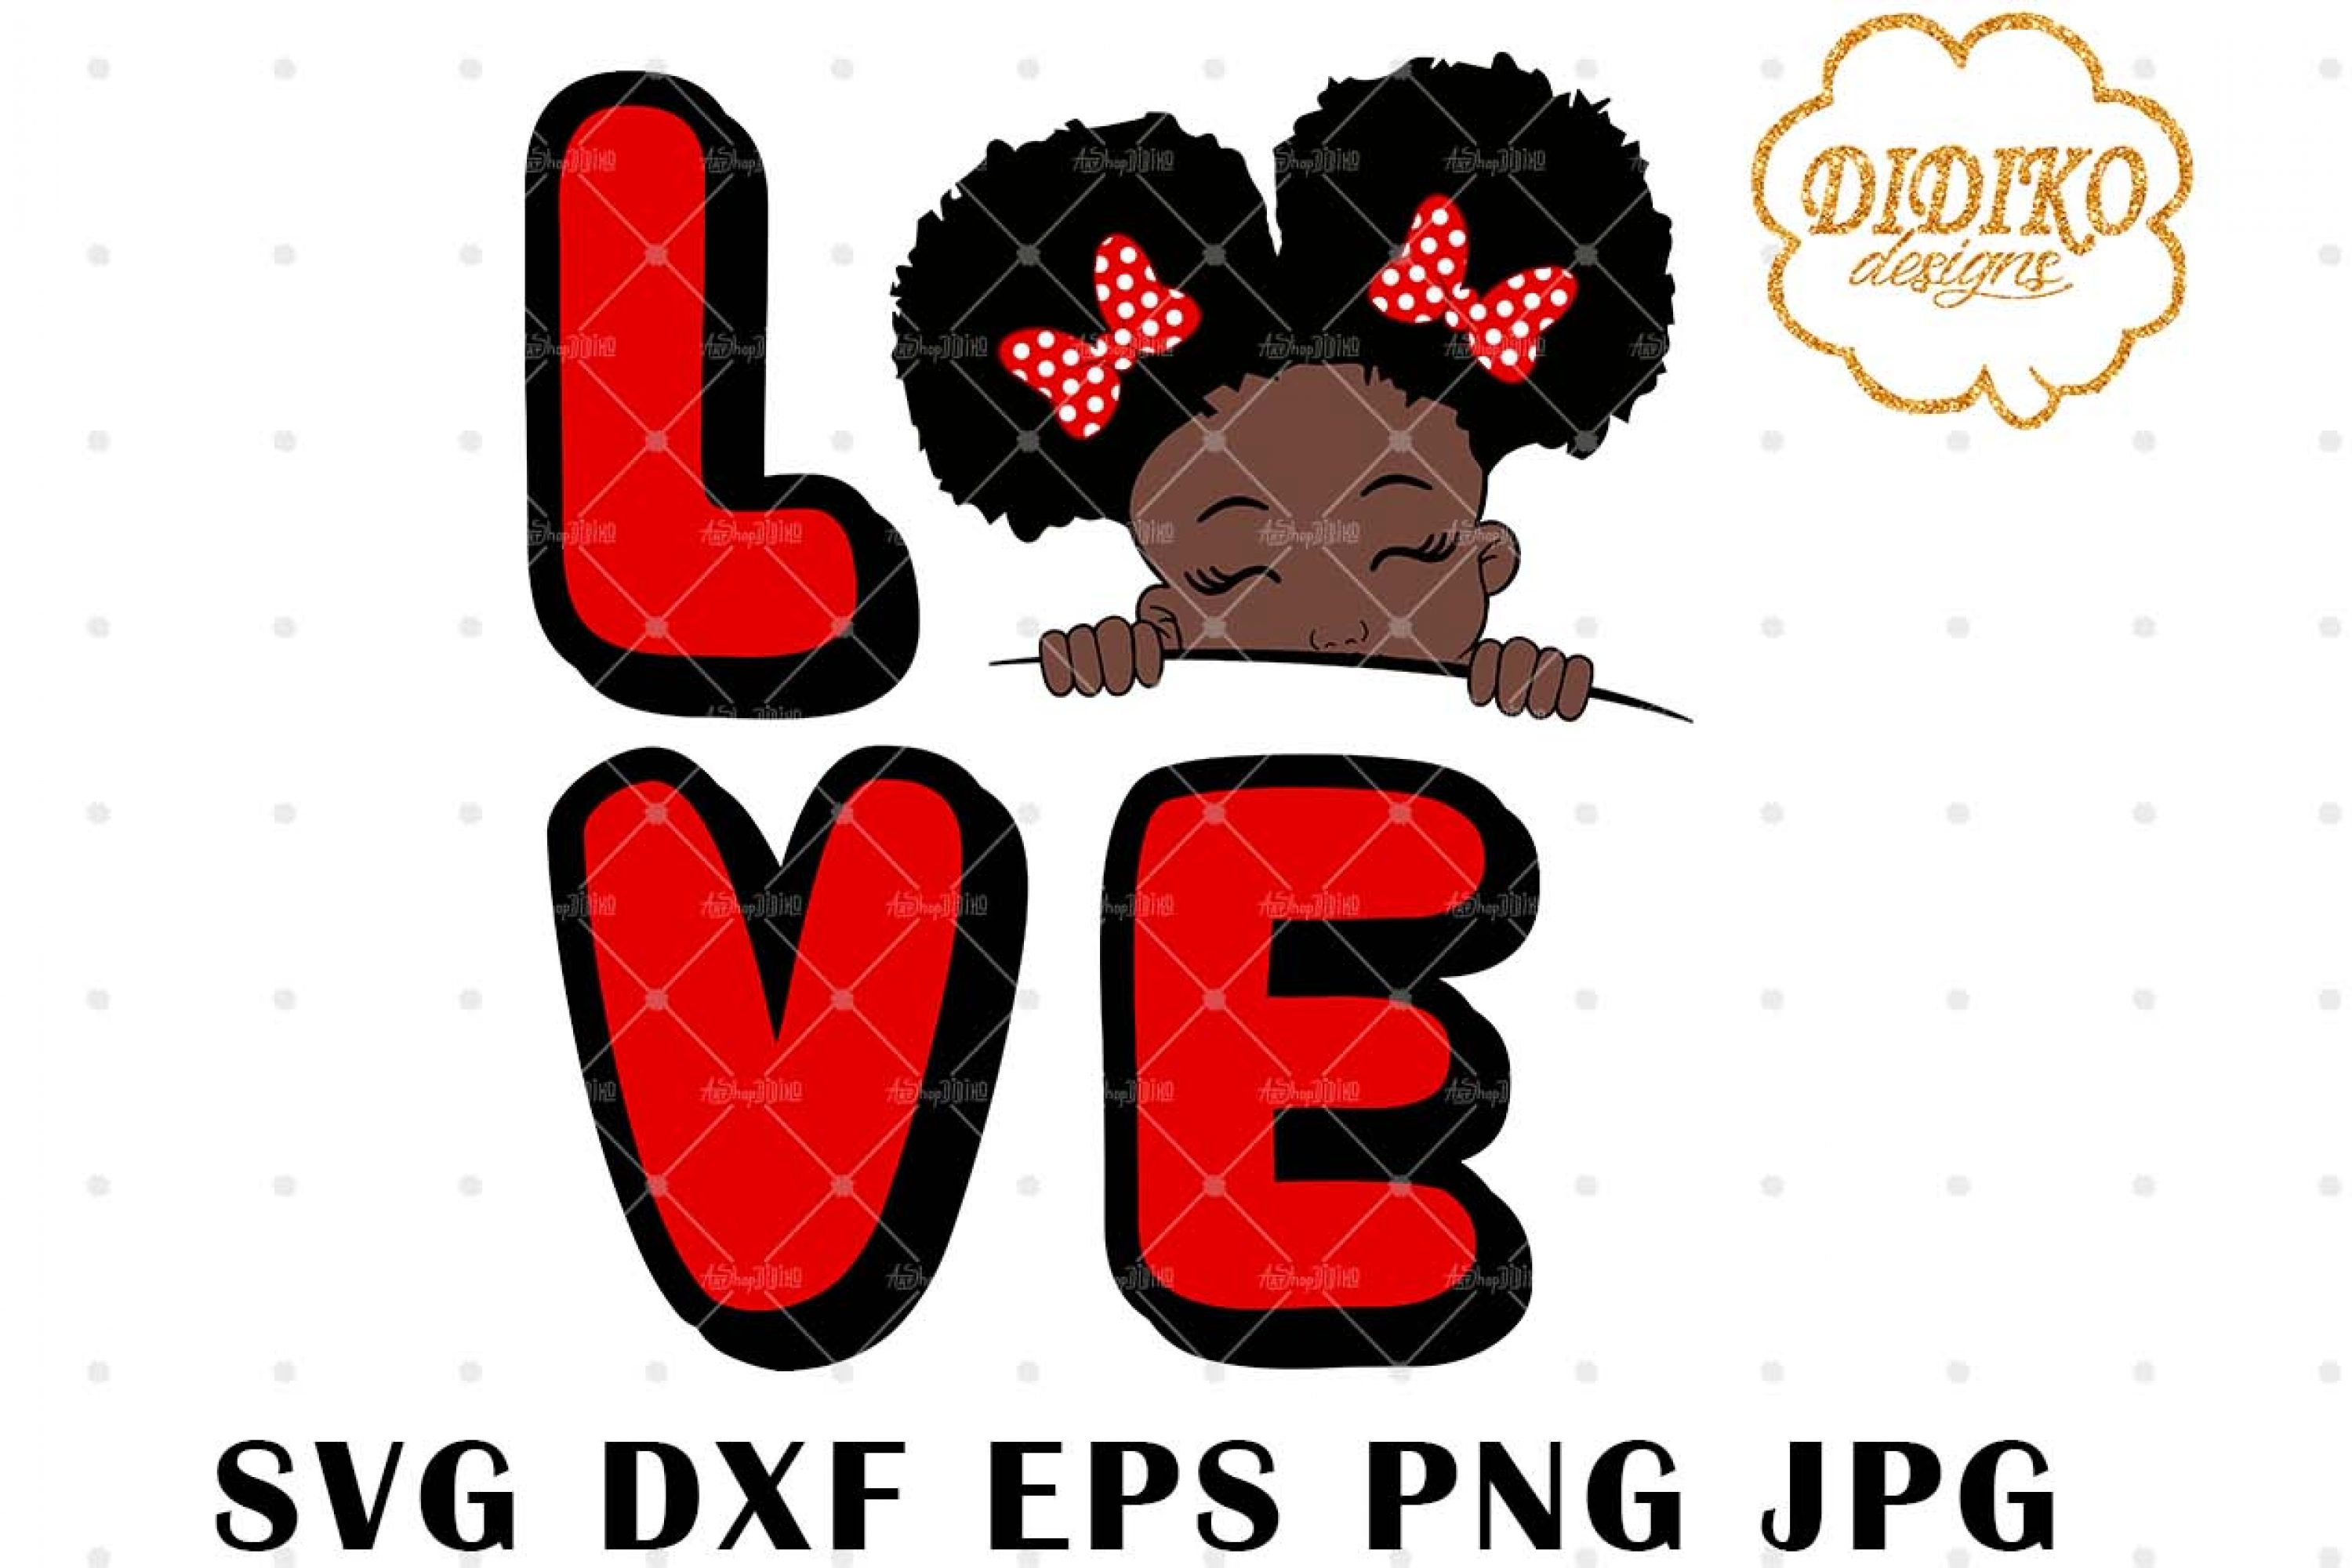 Afro Love Girl Peek A Boo 1 SVG, Afro Puff Girl SVG